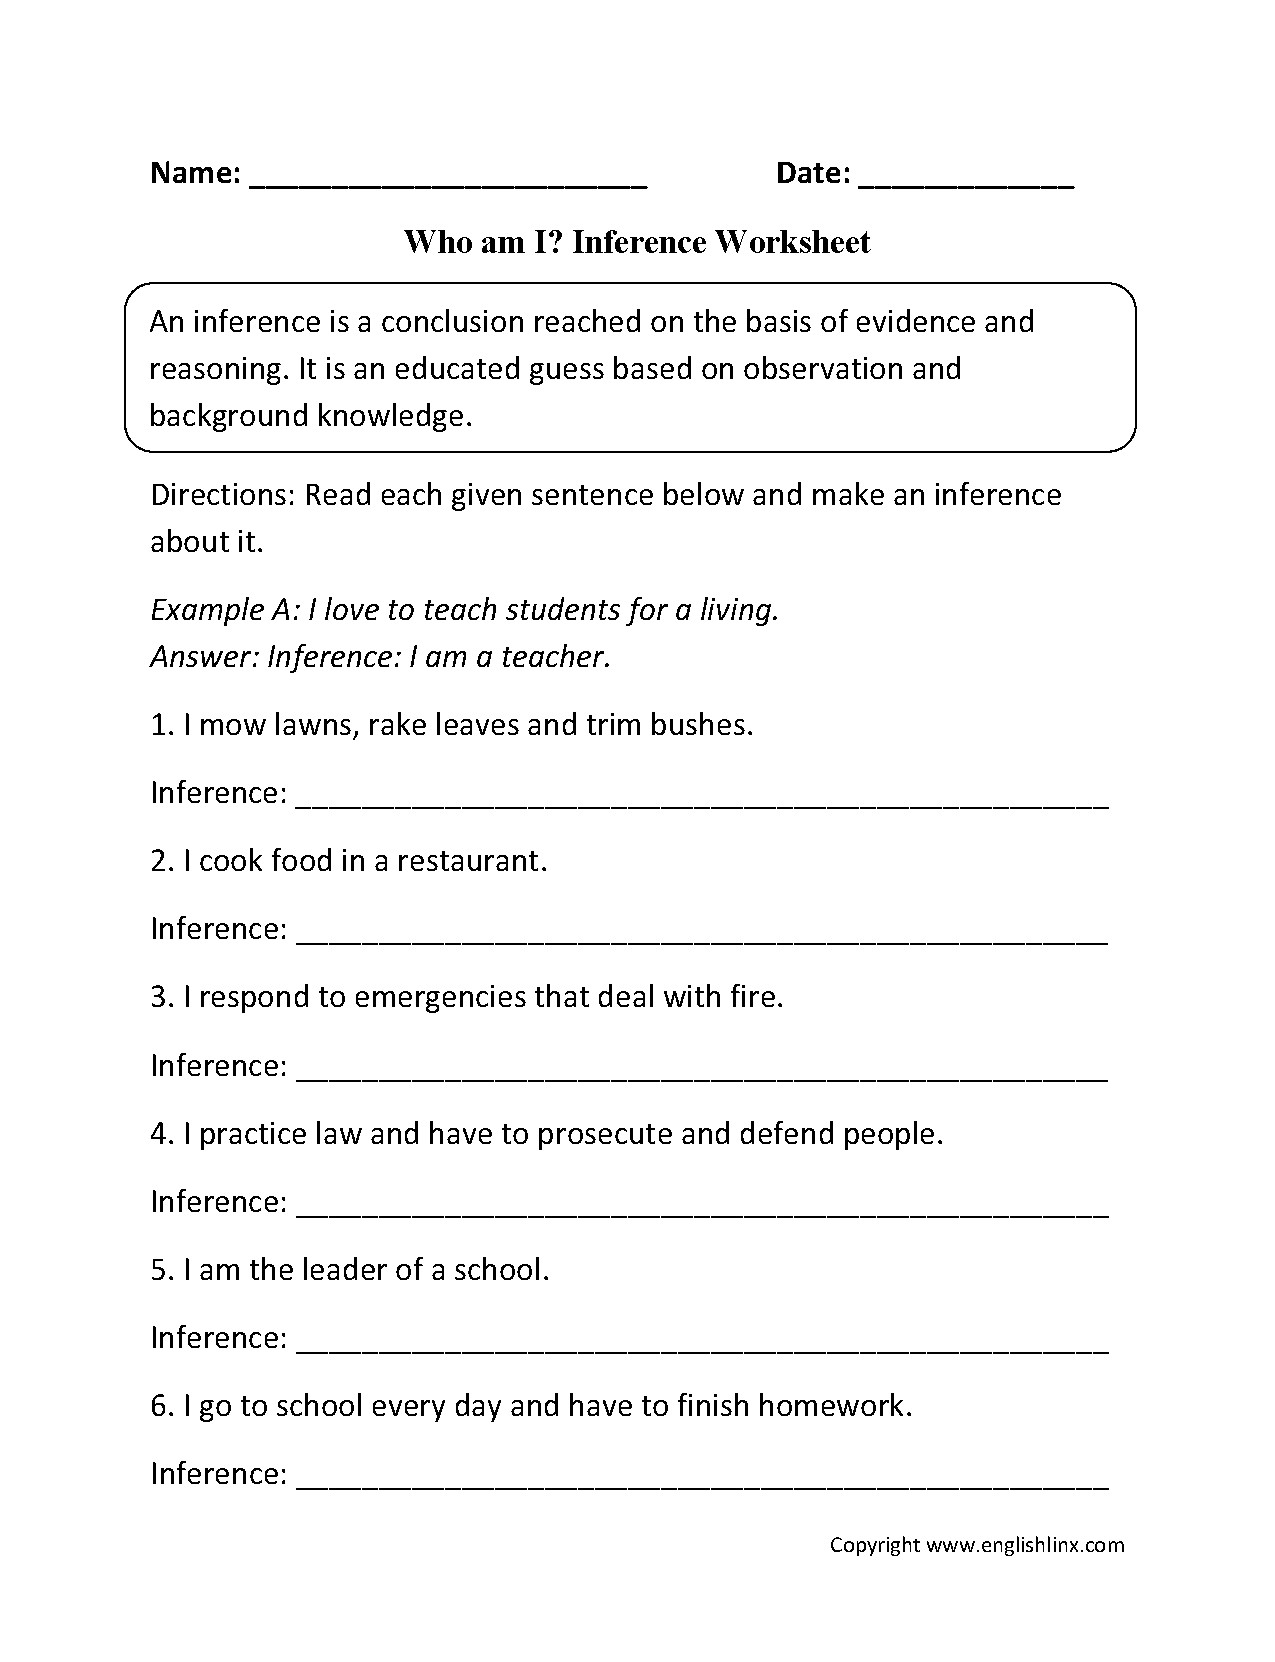 4th Grade Inferencing Worksheets New Inferences Worksheet High School